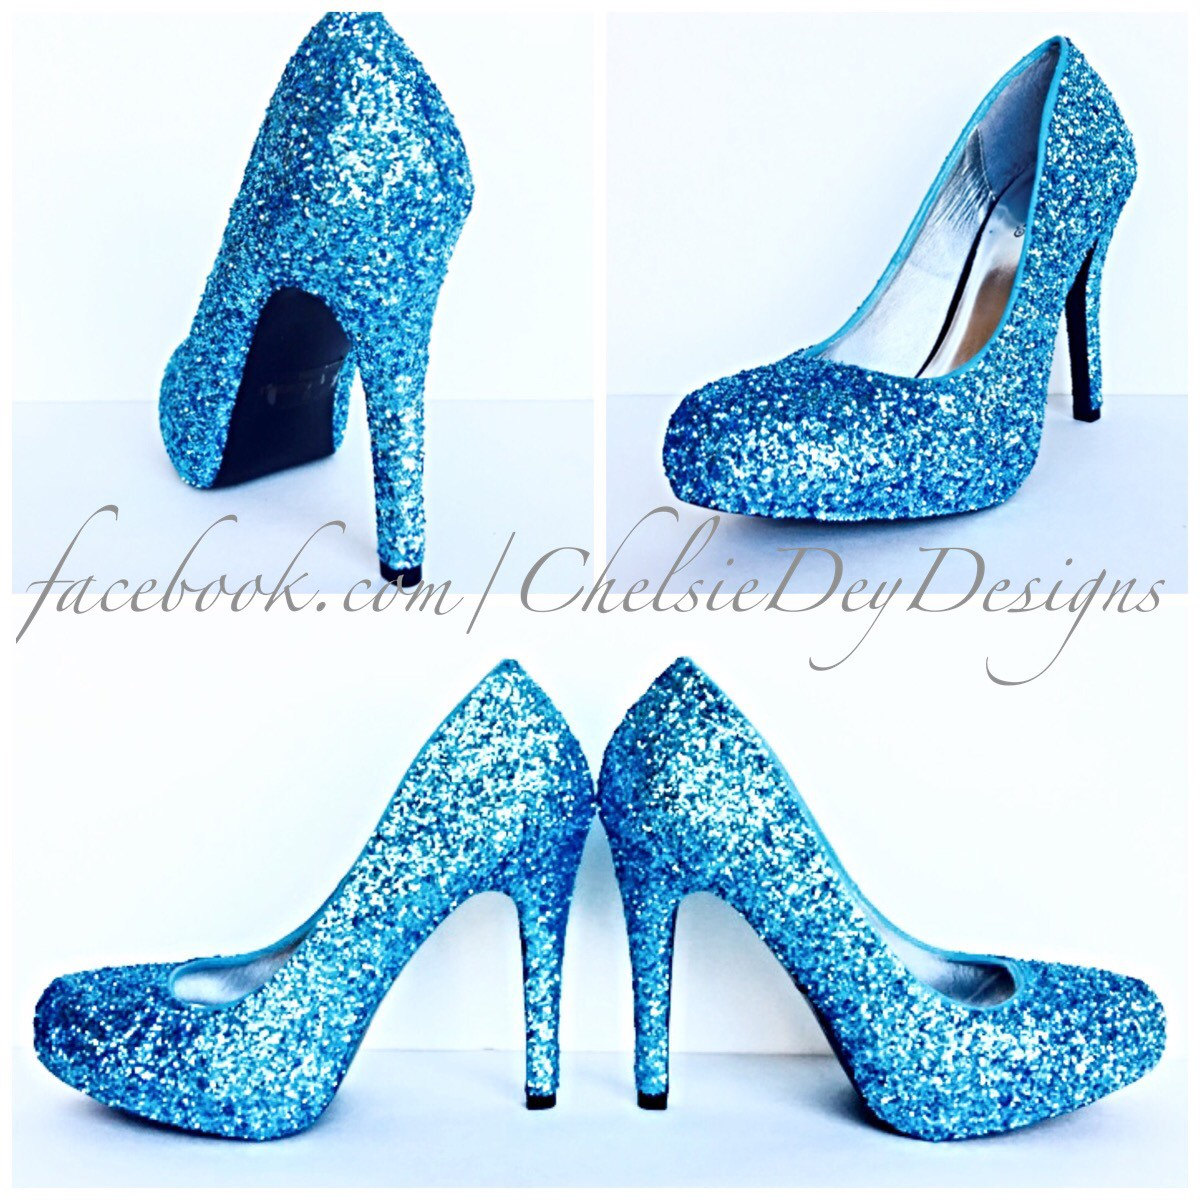 Glitter High Heels   Light Blue Pumps  Aqua Turquoise Ice Calypso   Black  Satin Bows